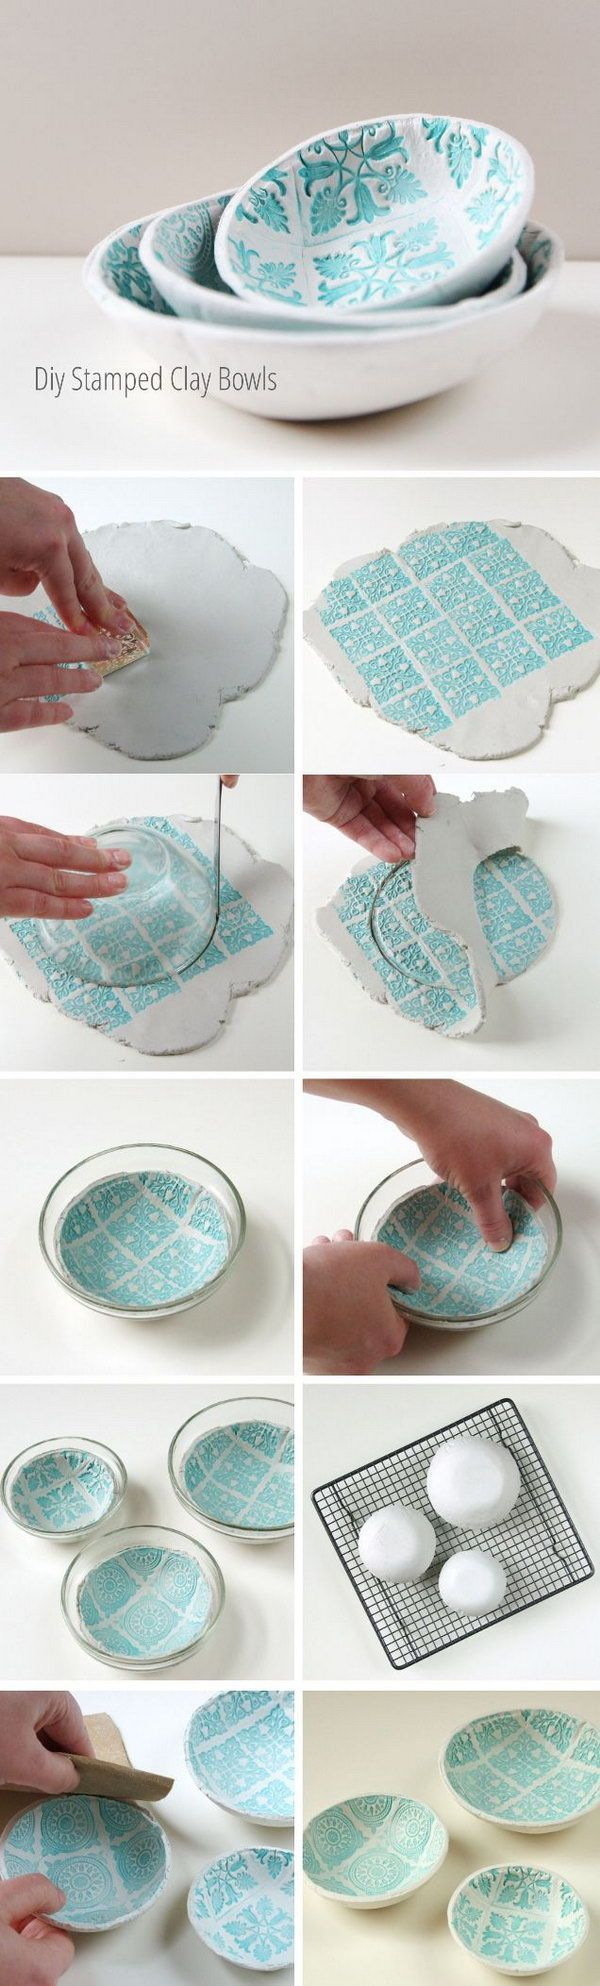 20 Creative DIY Bowl Ideas & Tutorials